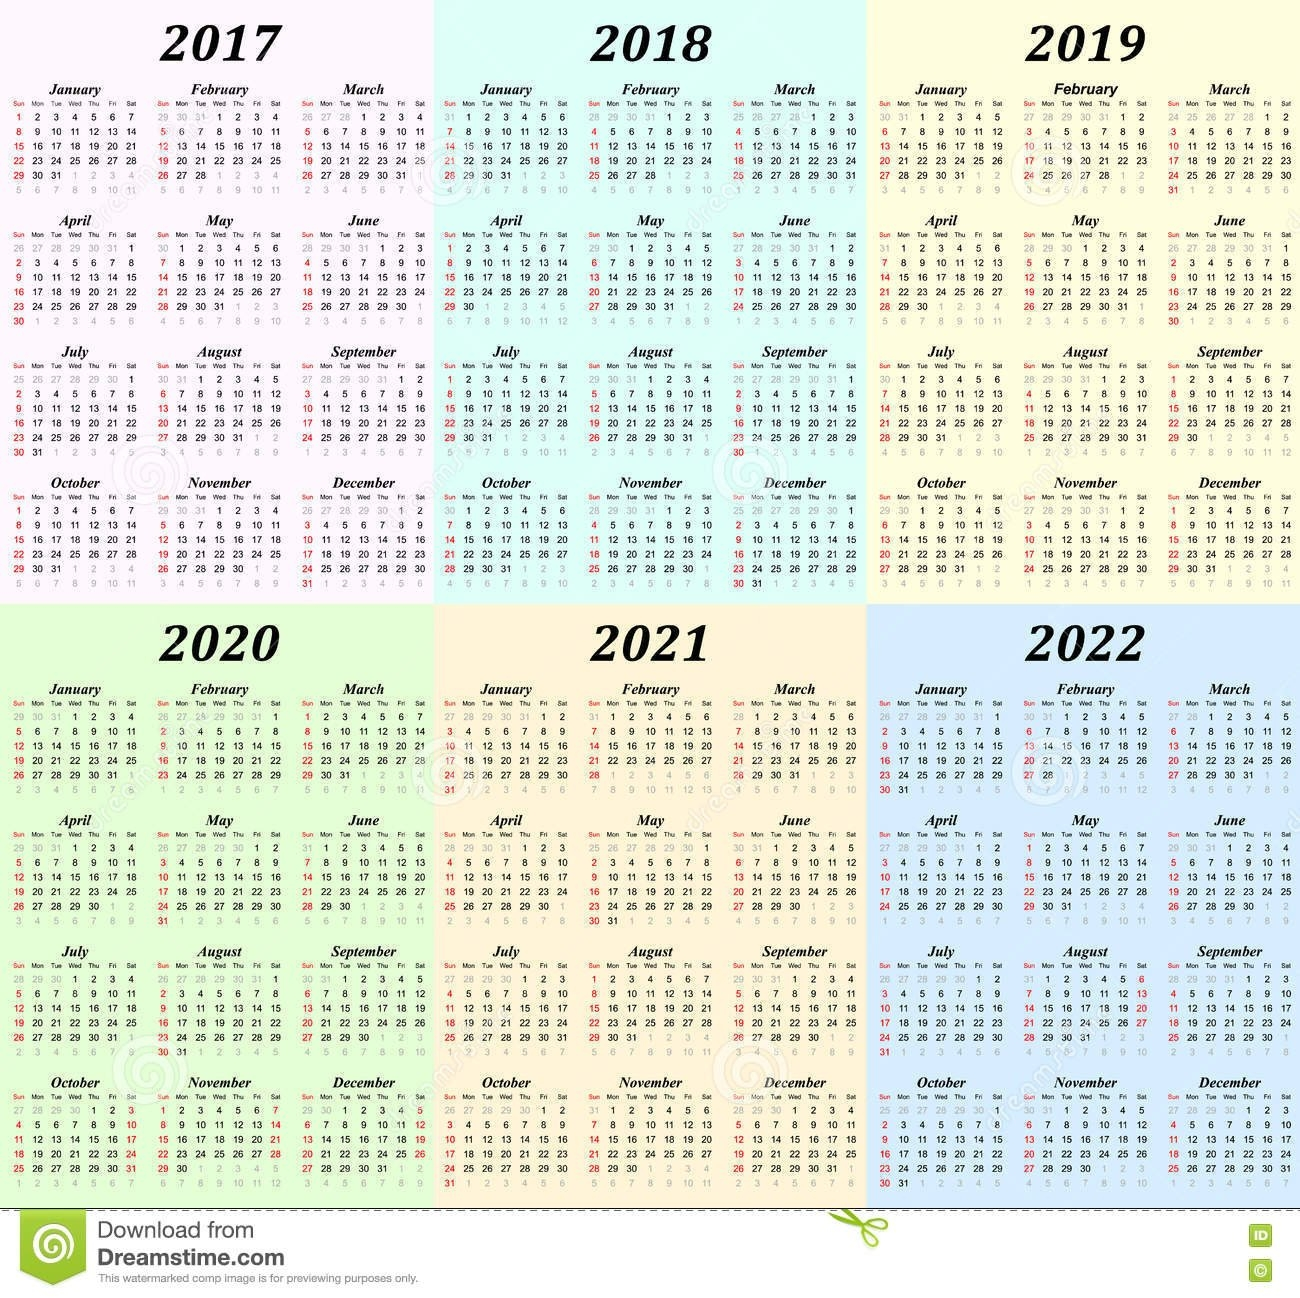 5 Year Calendar 2019 To 2023 - Littledelhisf 5 Year Calendar 2019 To 2023